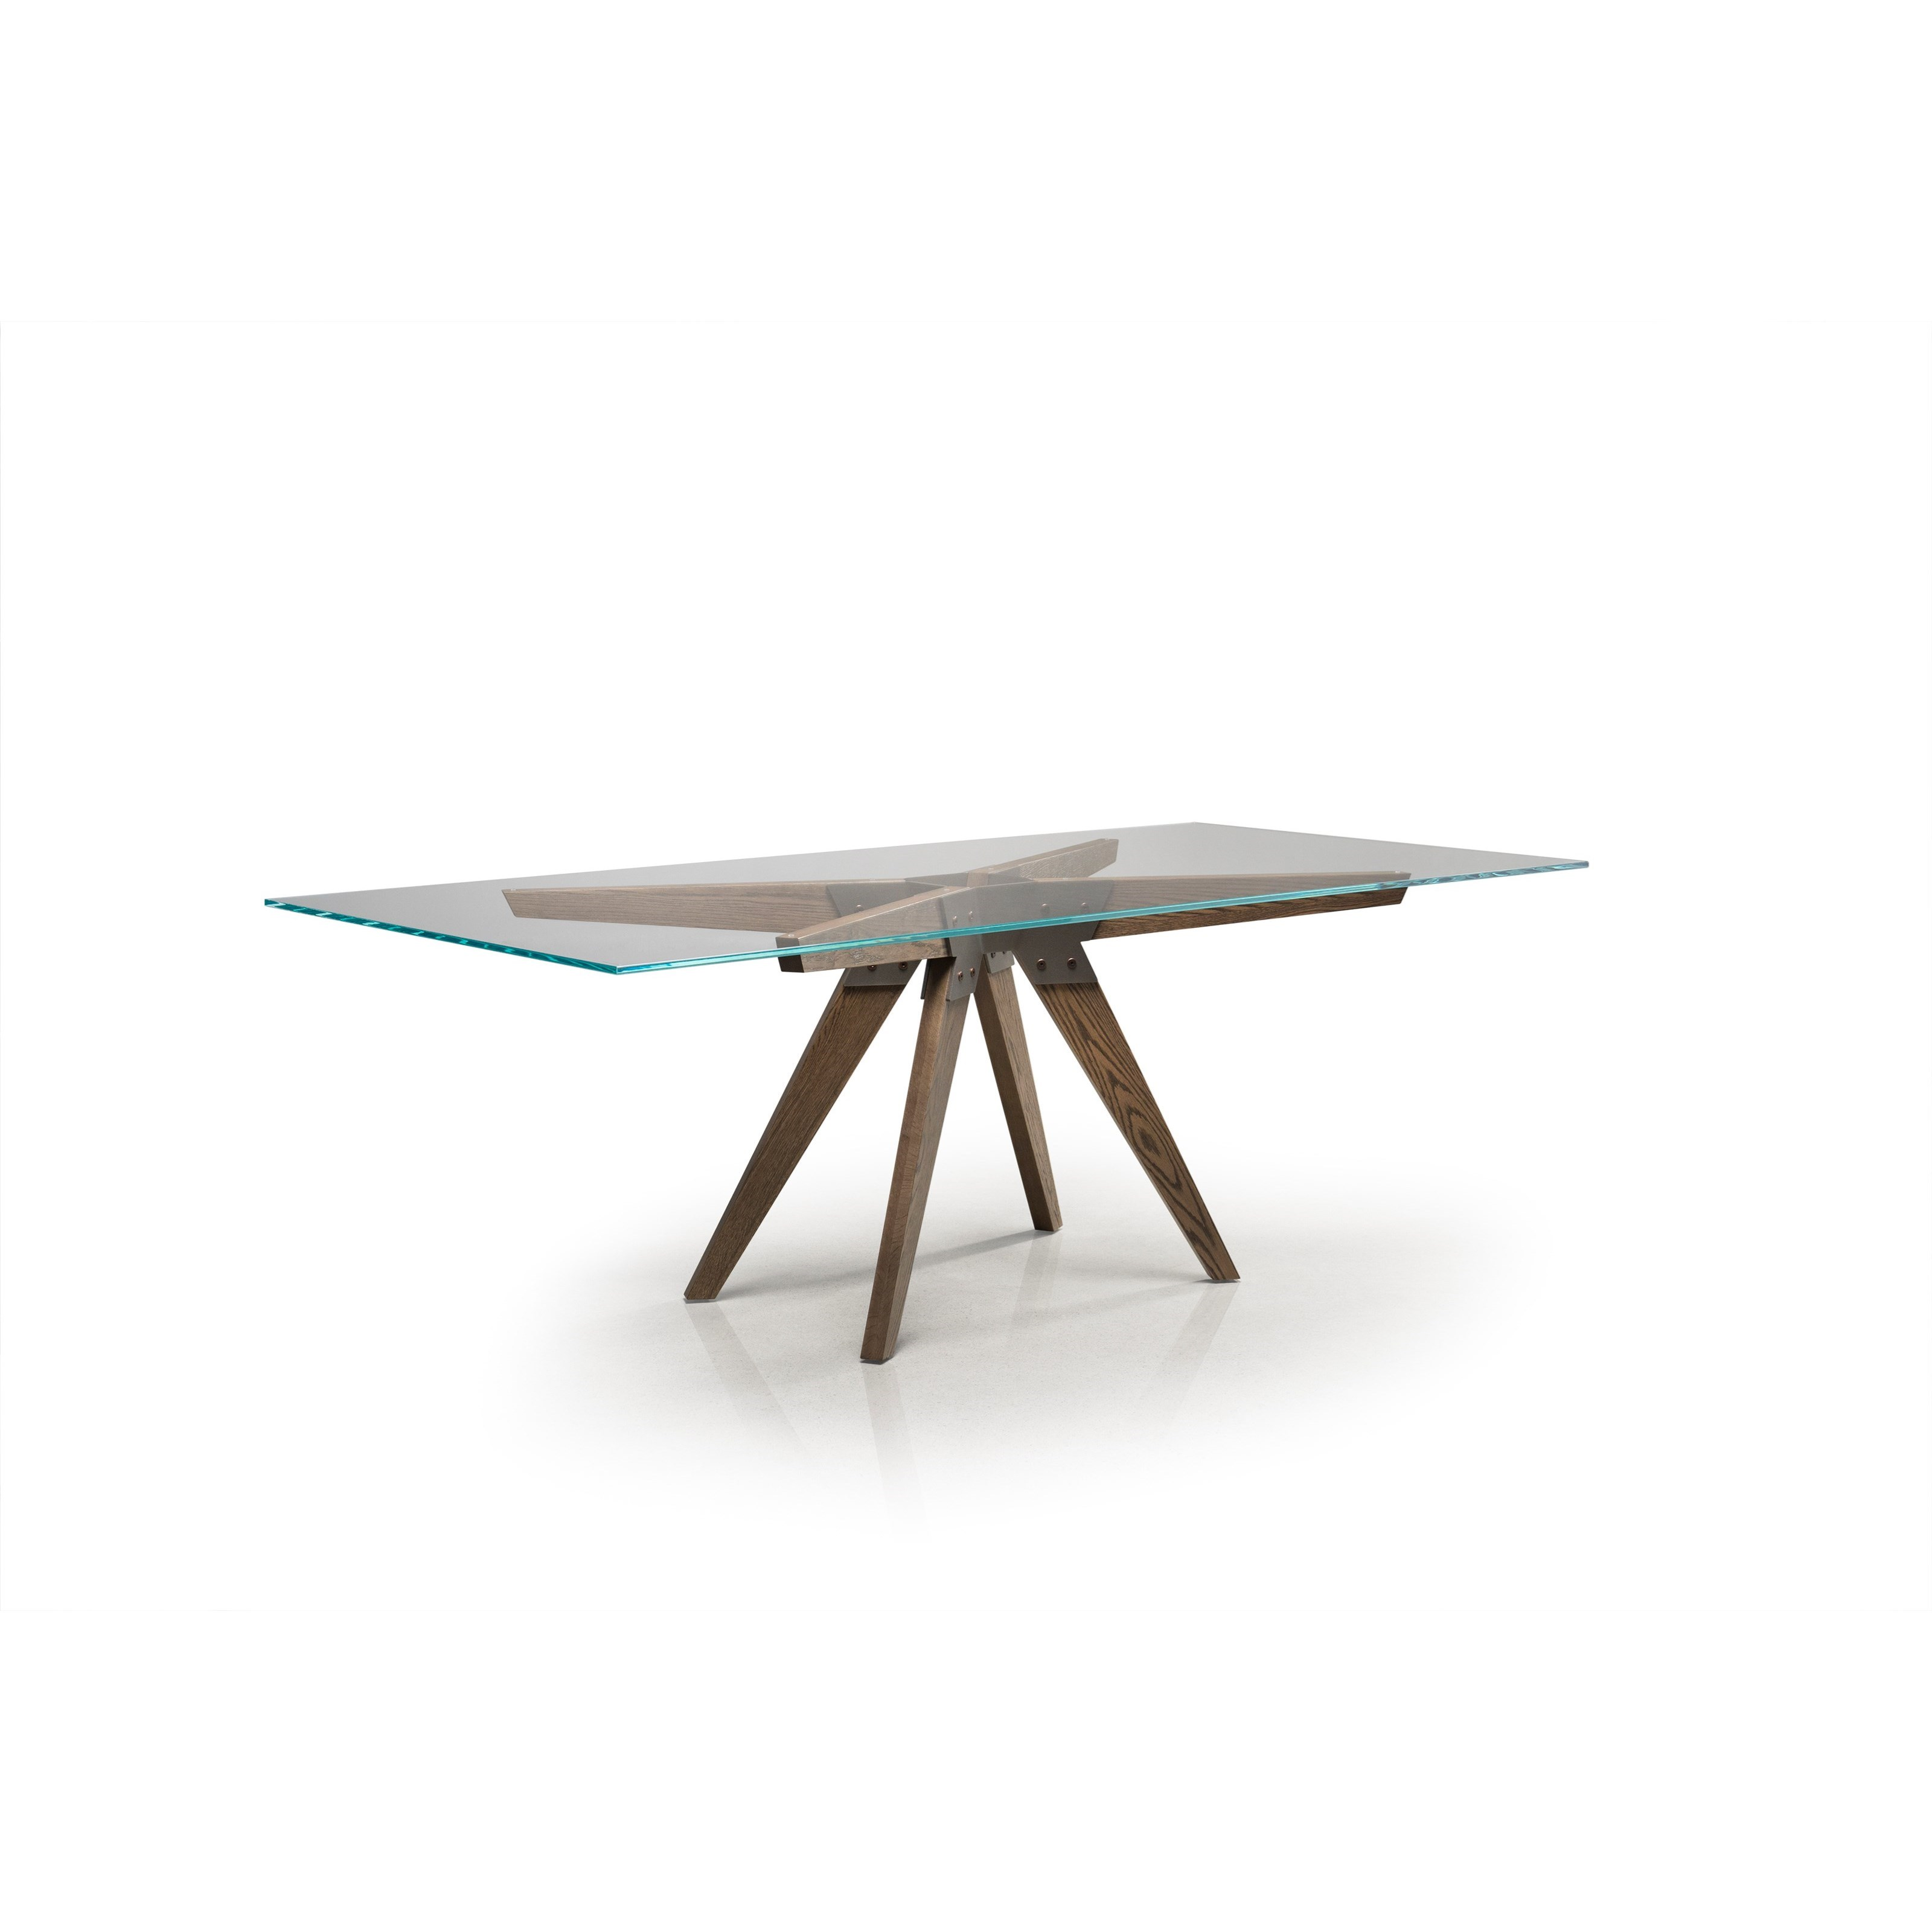 Trica Contemporary Tables Soul Dining Table - Item Number: Soul-36-72